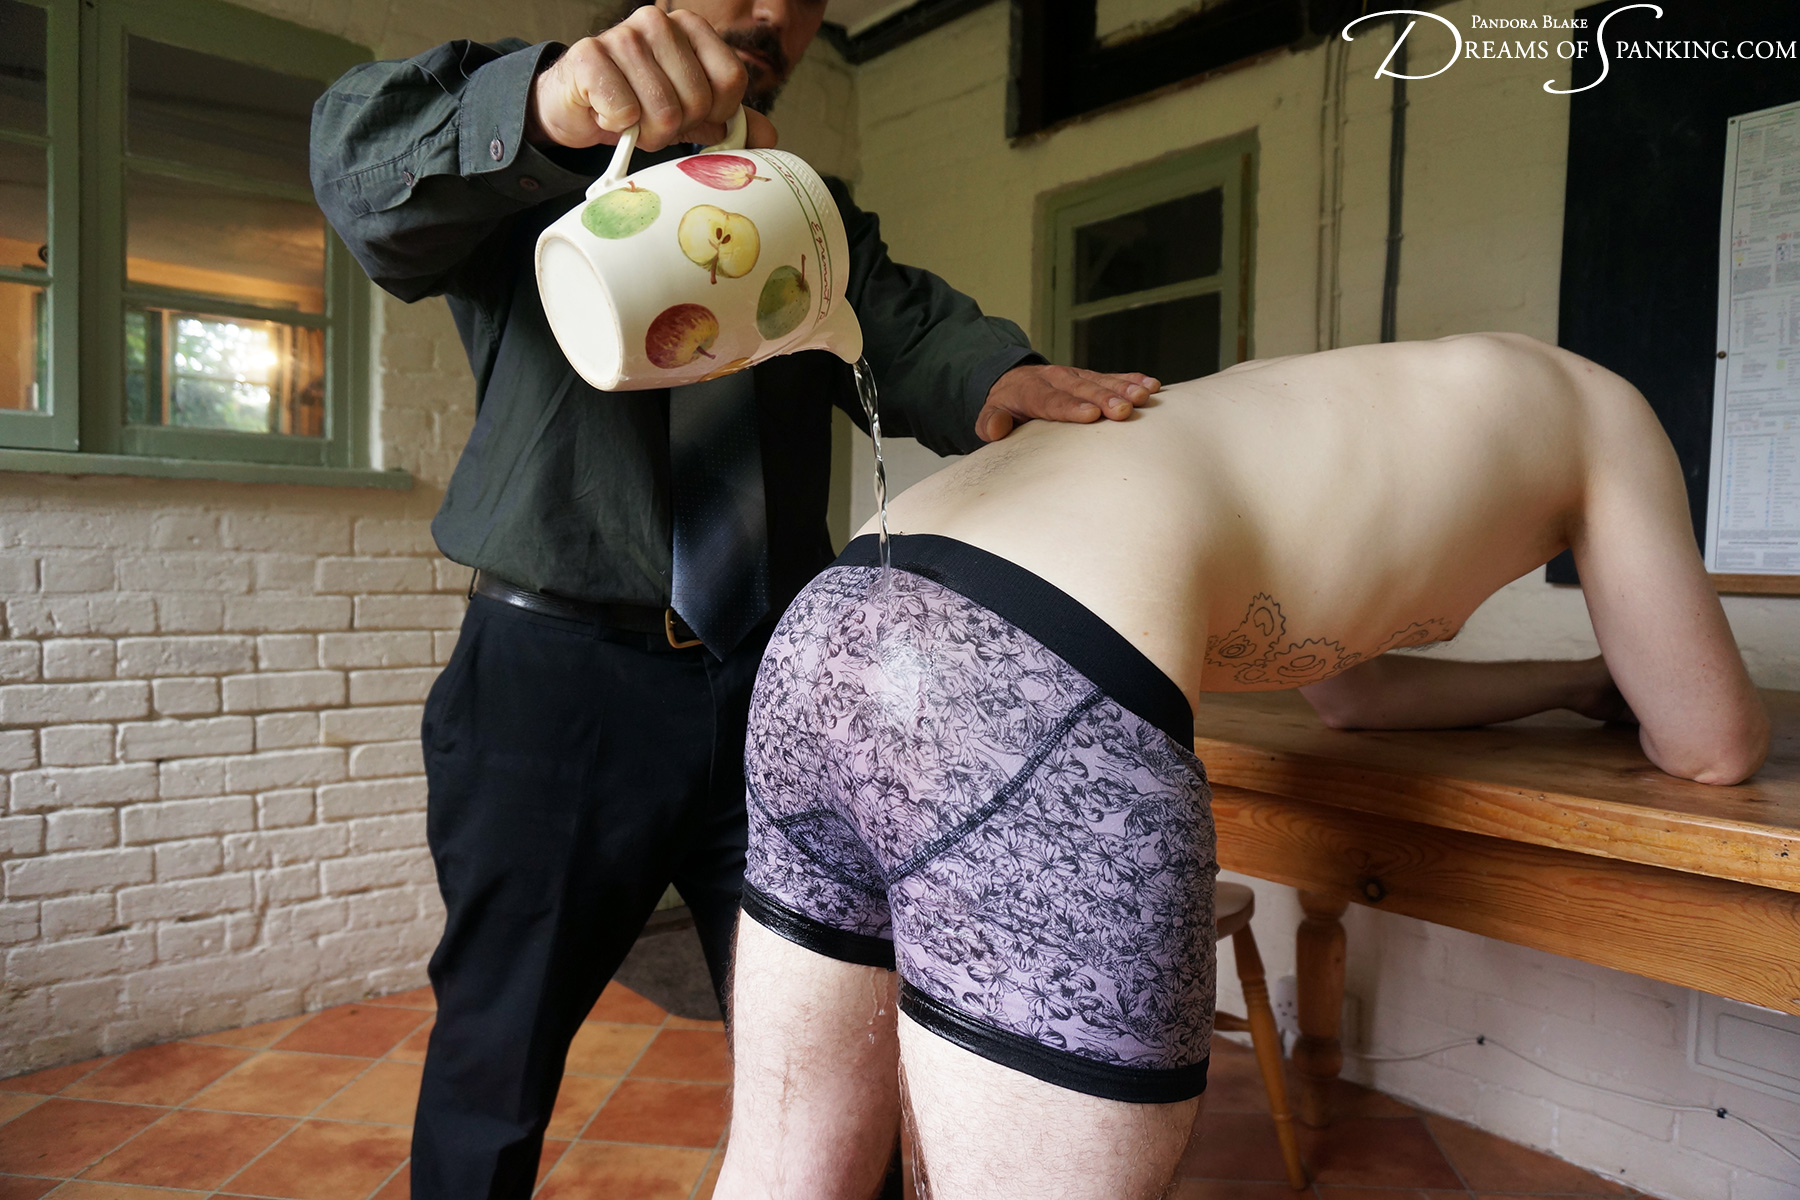 Cold water poured over Andrew's tight briefs at Dreams of Spanking